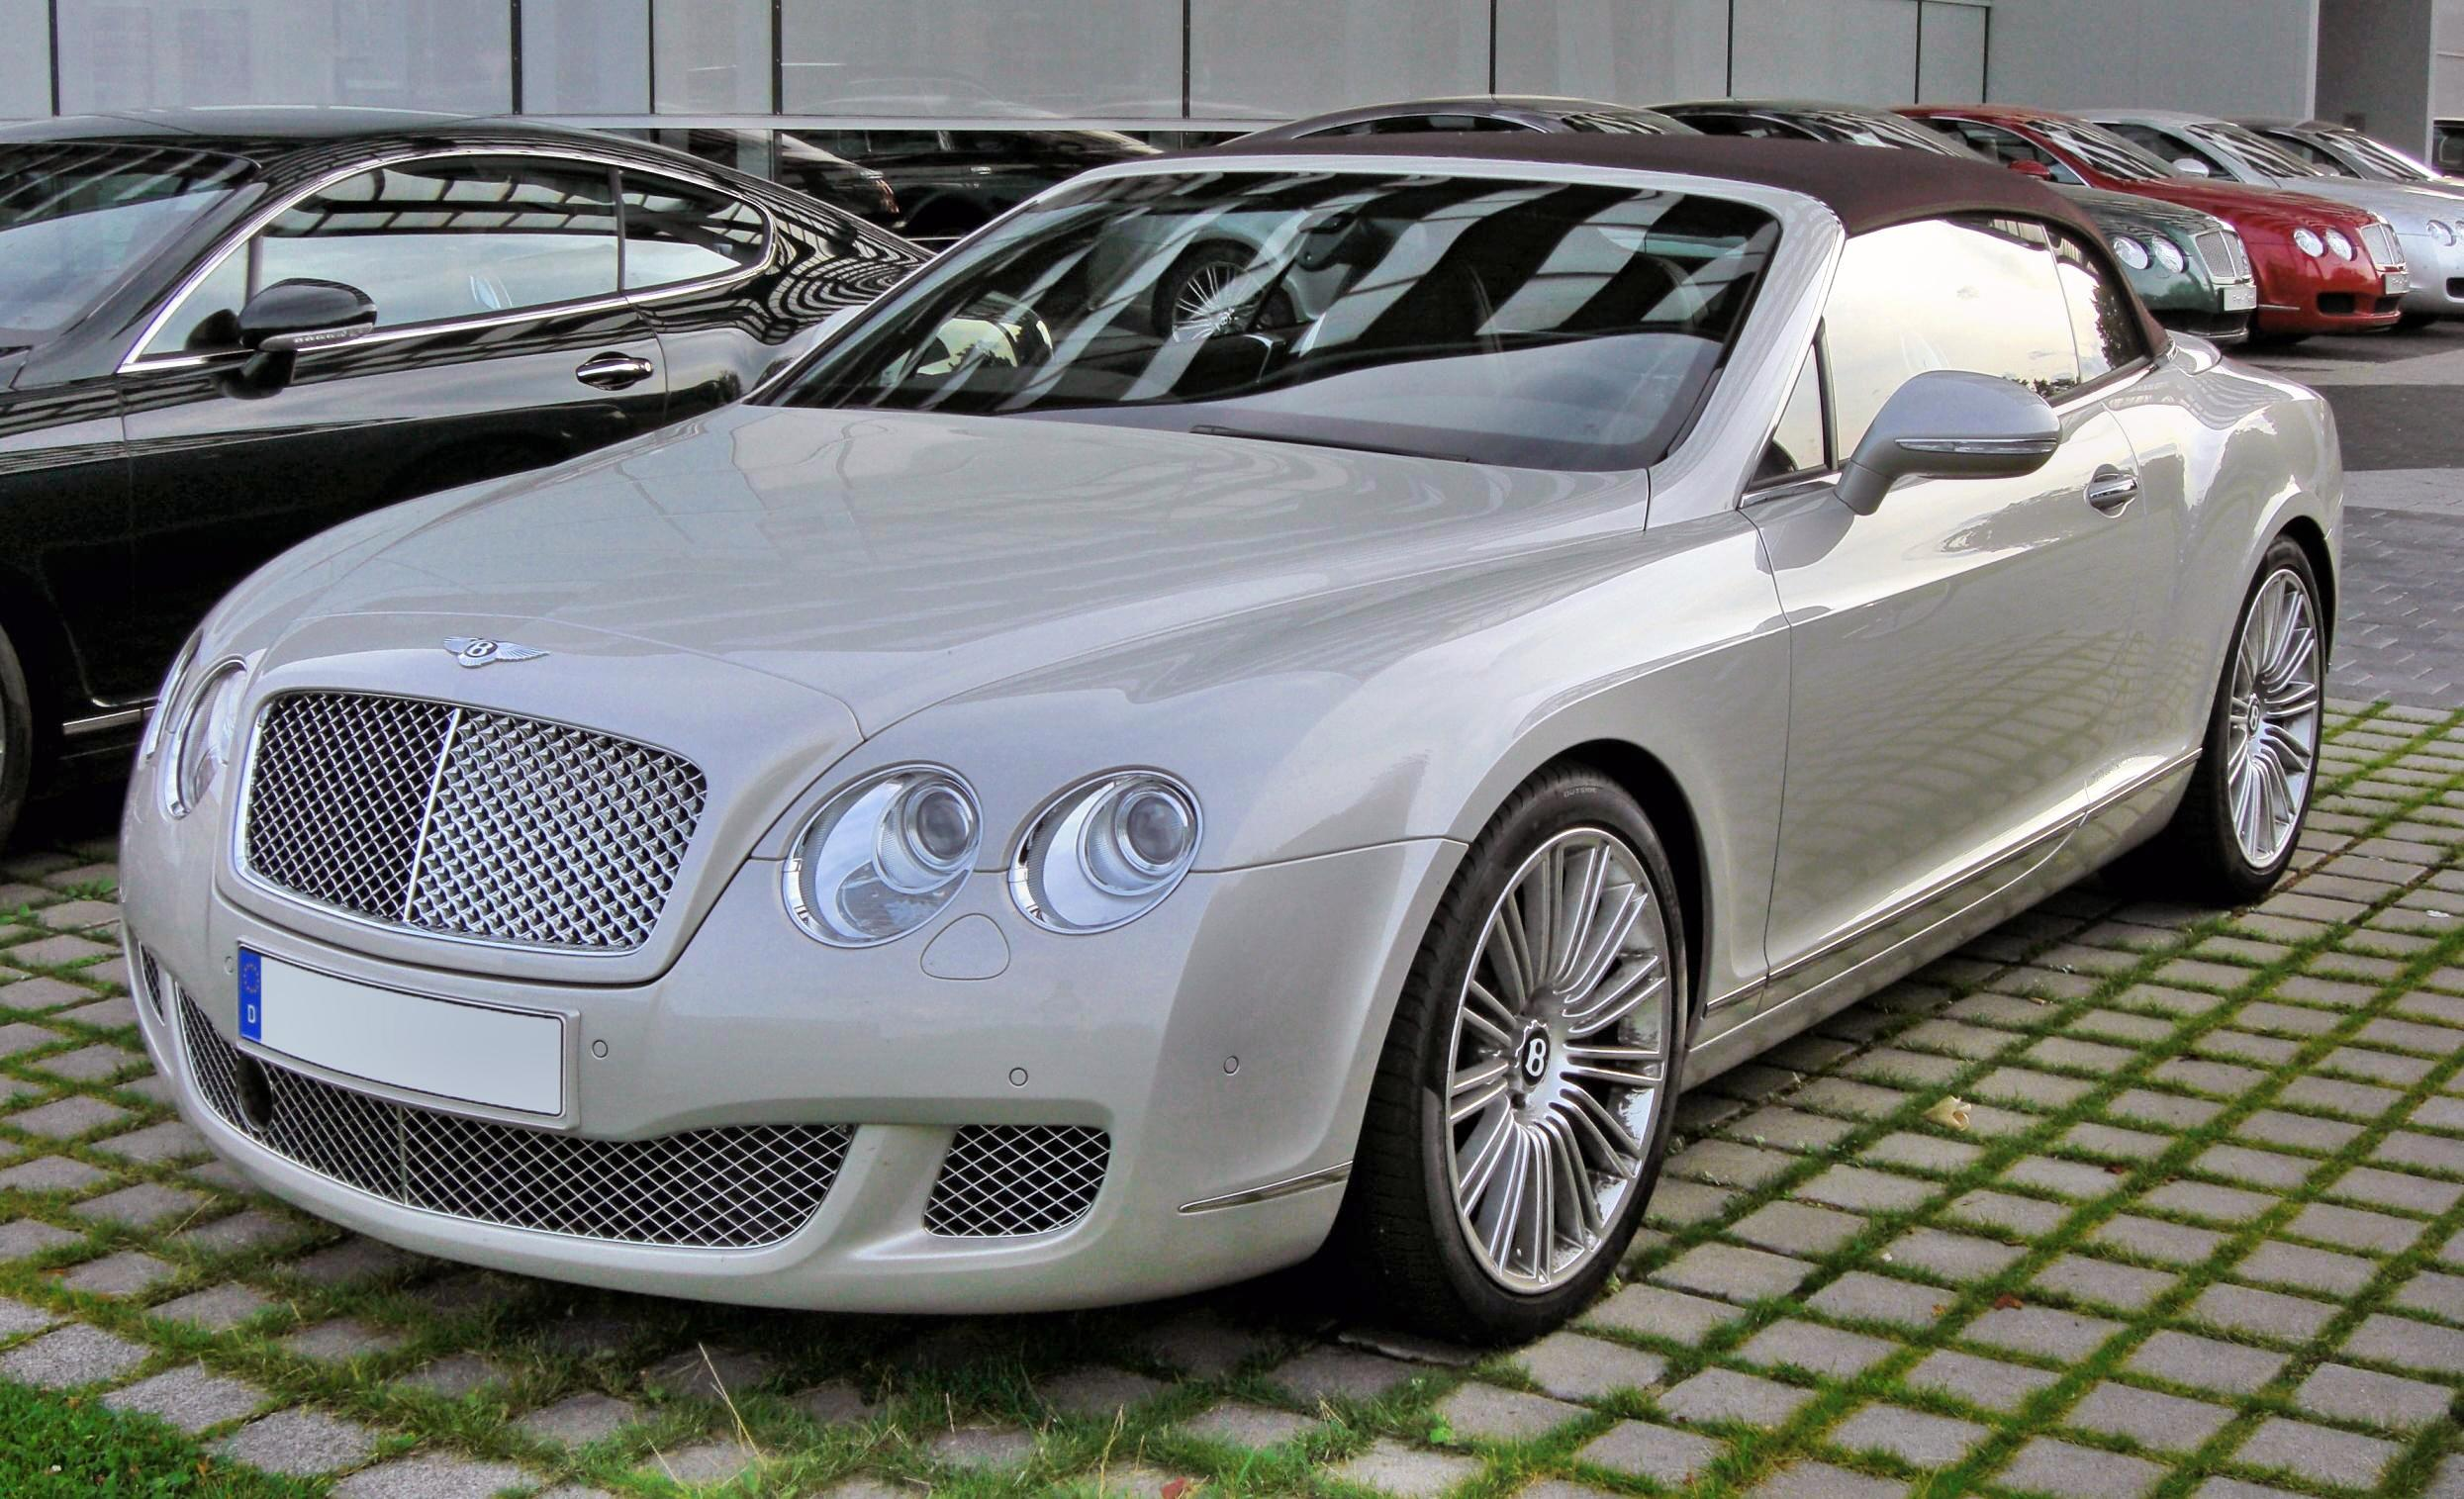 2009 Bentley Continental Gt Speed #3